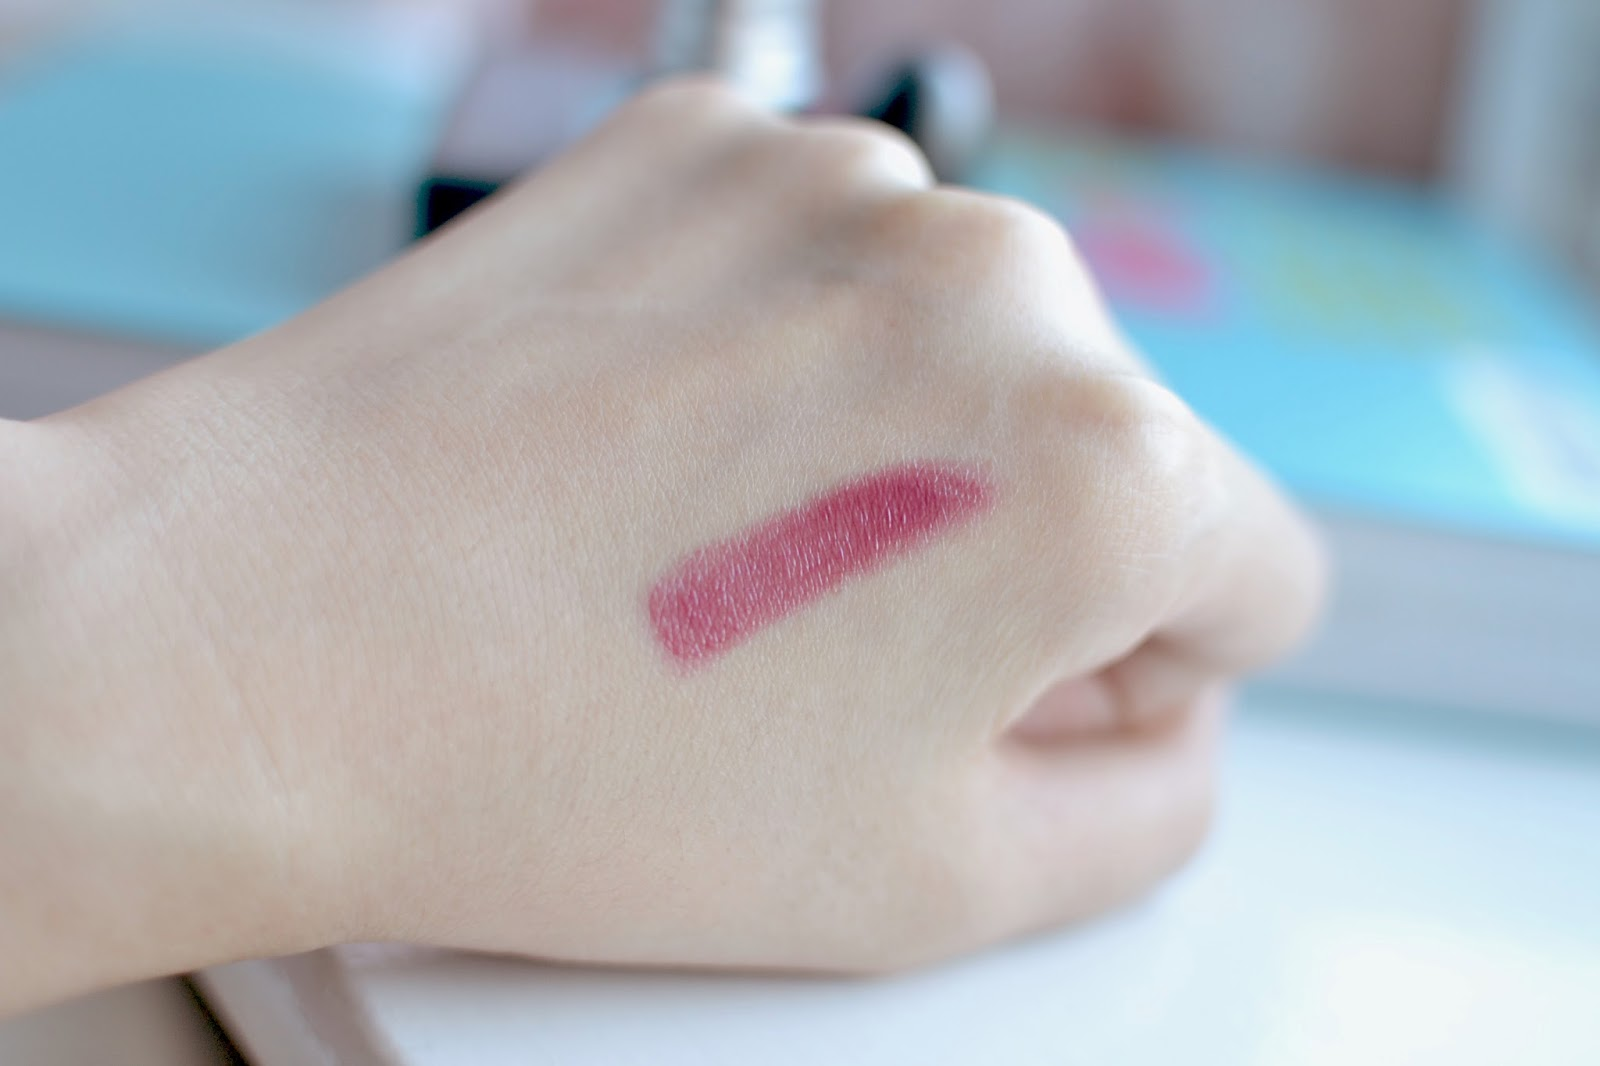 MAC plumful review, lipstick for asian skin tones